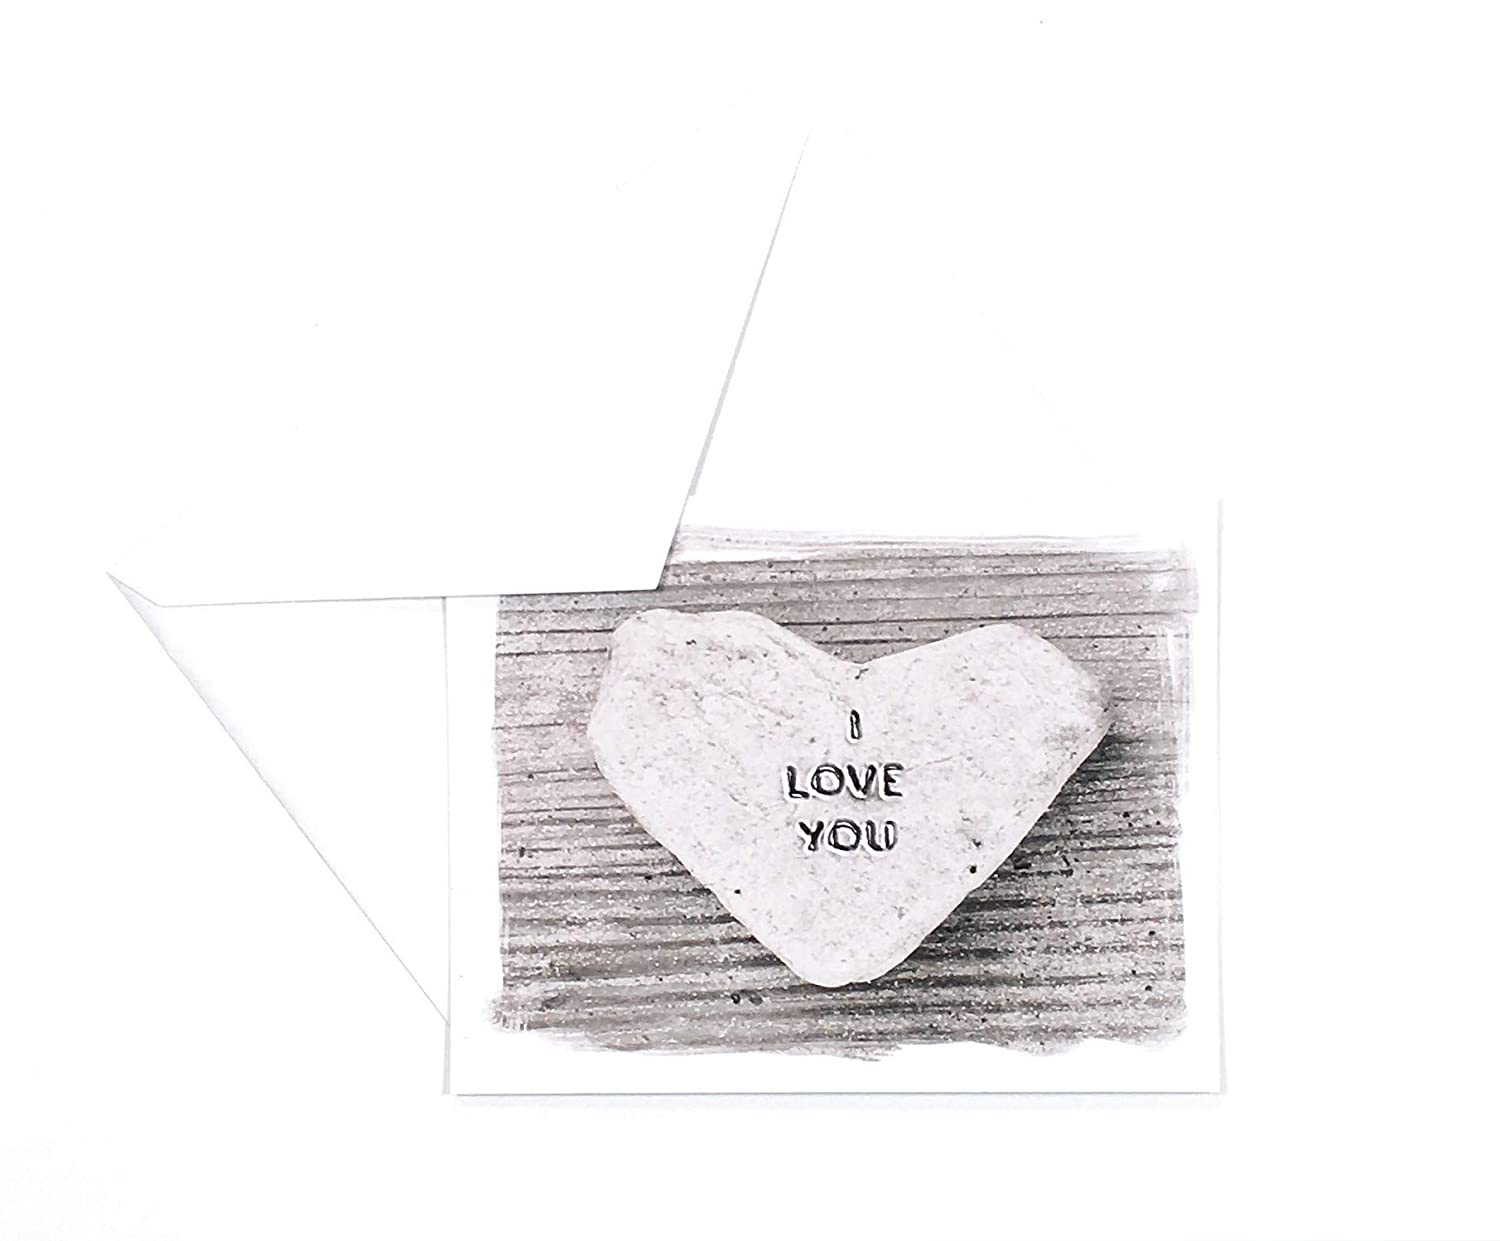 Romantic Beach Theme Heart Cards- Set You Love Animer and price revision Card Max 66% OFF I